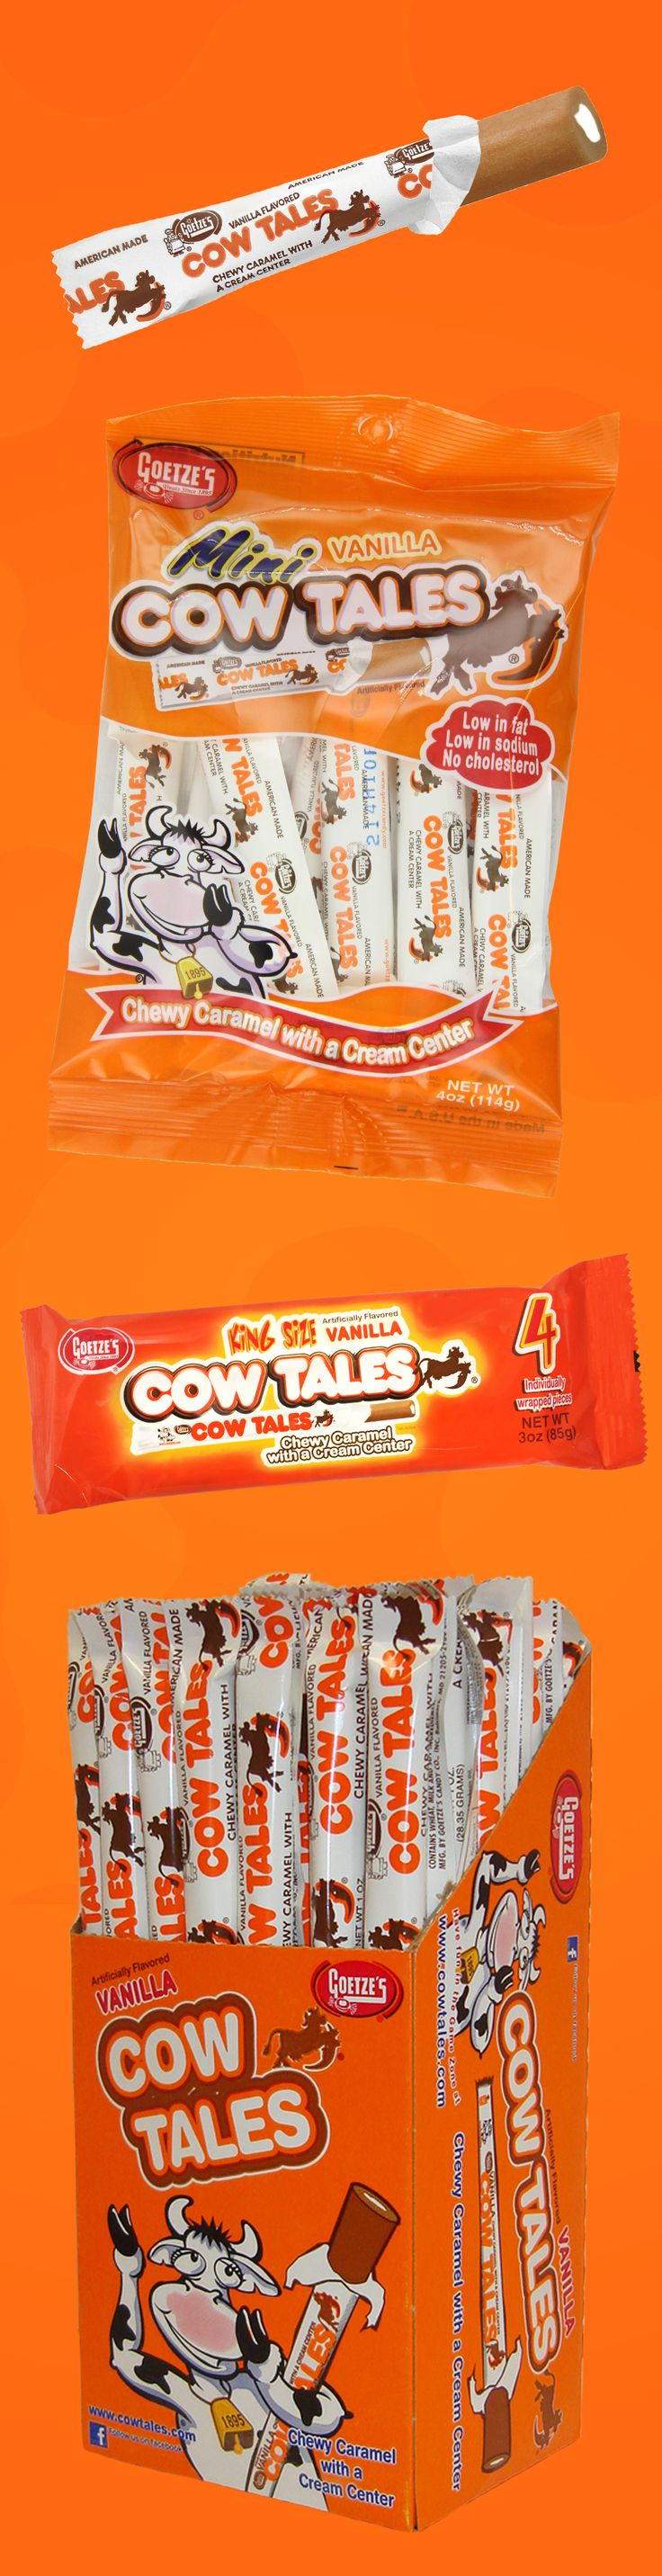 Do you remember these delicious, chewy caramels with the cream center? They're made in USA and completely nut-free! Find Goetze's Cow Tales in a store near you. Try searching your home town in their Product Locator.